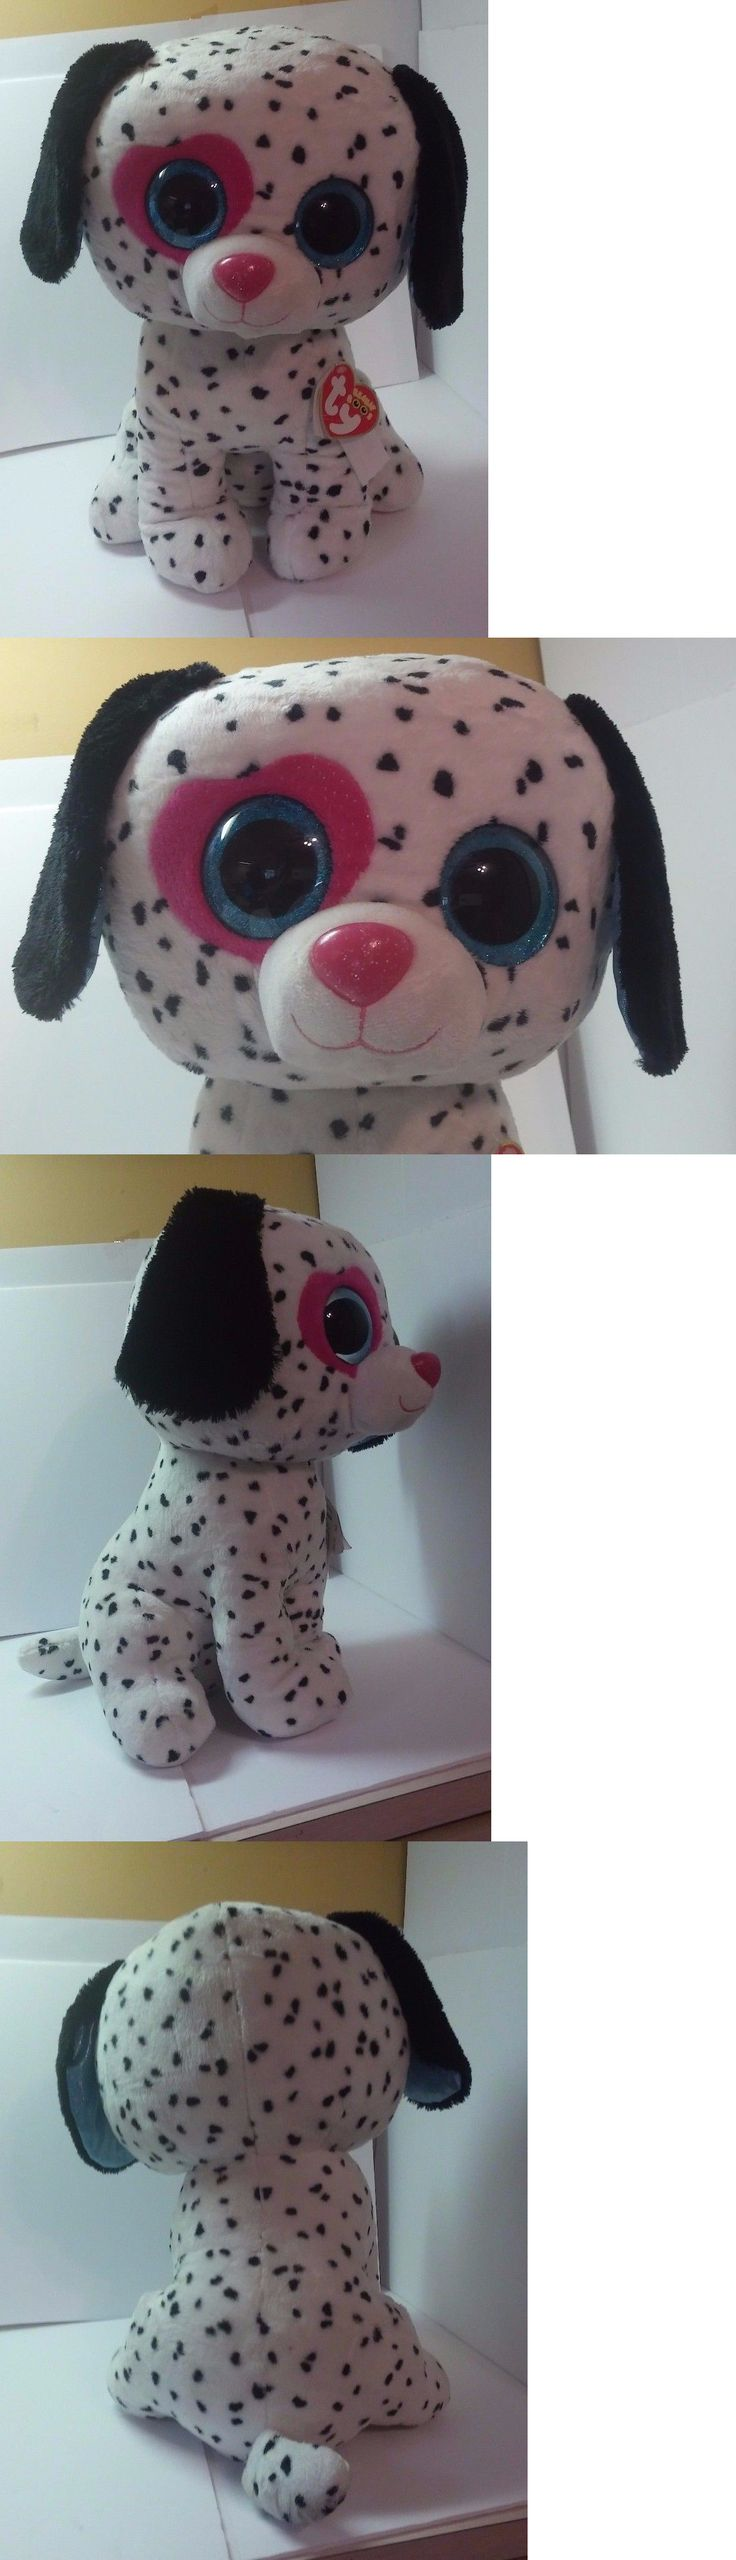 Other Ty Beanbag Plush 1037: Ty Beanie Boos Chloe Large 16 Plush Dalmatian Puppy Dog Justice Exclusive Nwt -> BUY IT NOW ONLY: $79.99 on eBay!